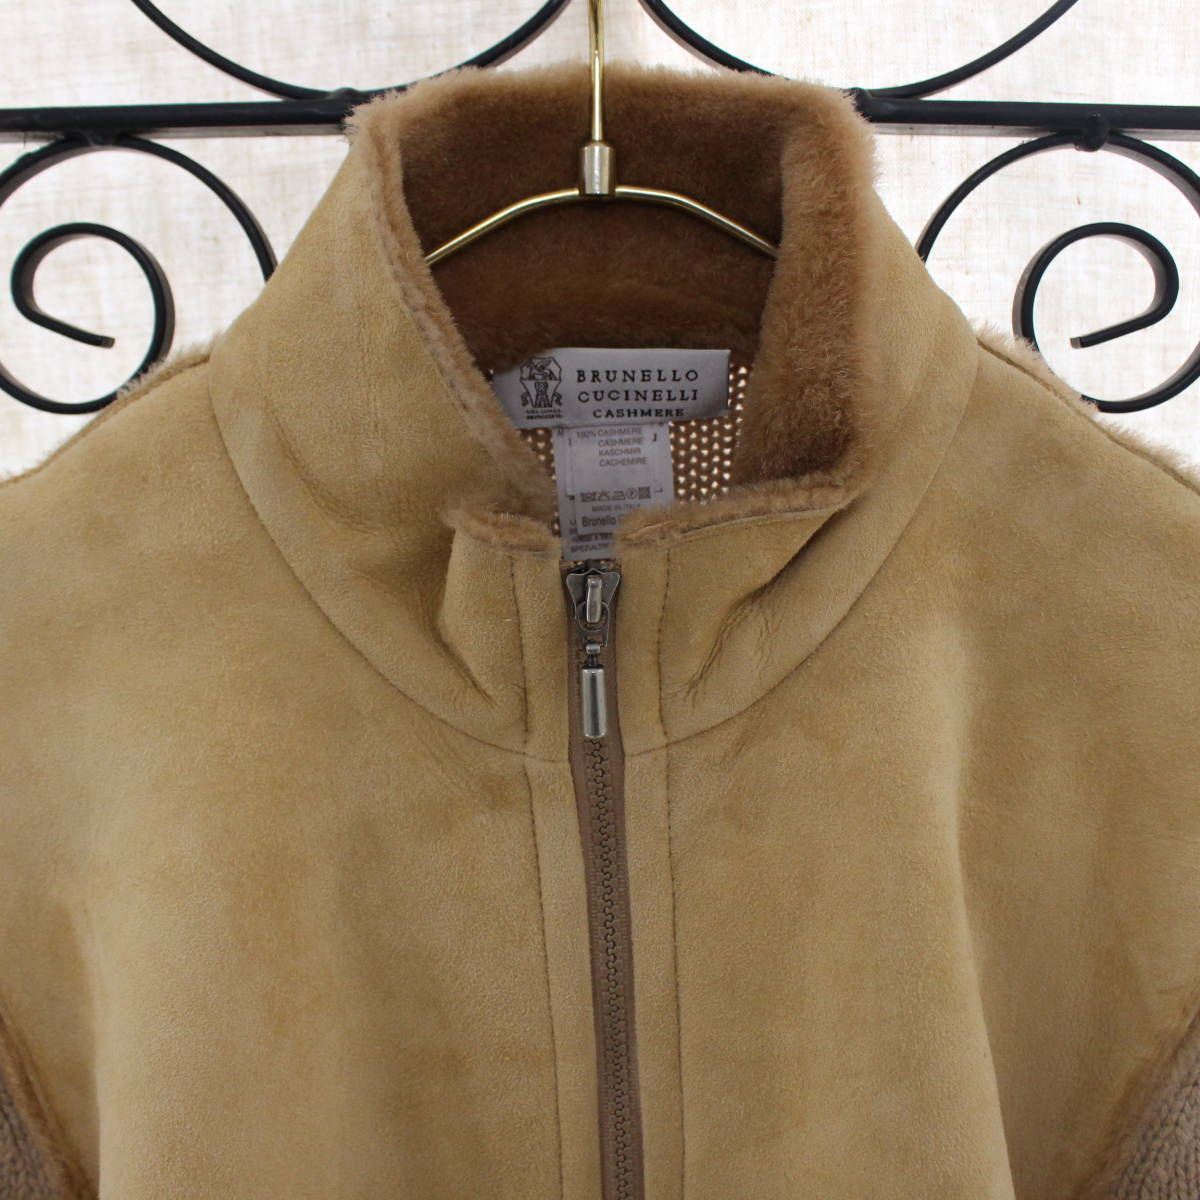 BRUNELLO CUCINELLI CASHMERE MOUTON JACKET MADE IN ITALY/ブルネロクチネリカシミヤムートンジャケット_画像3